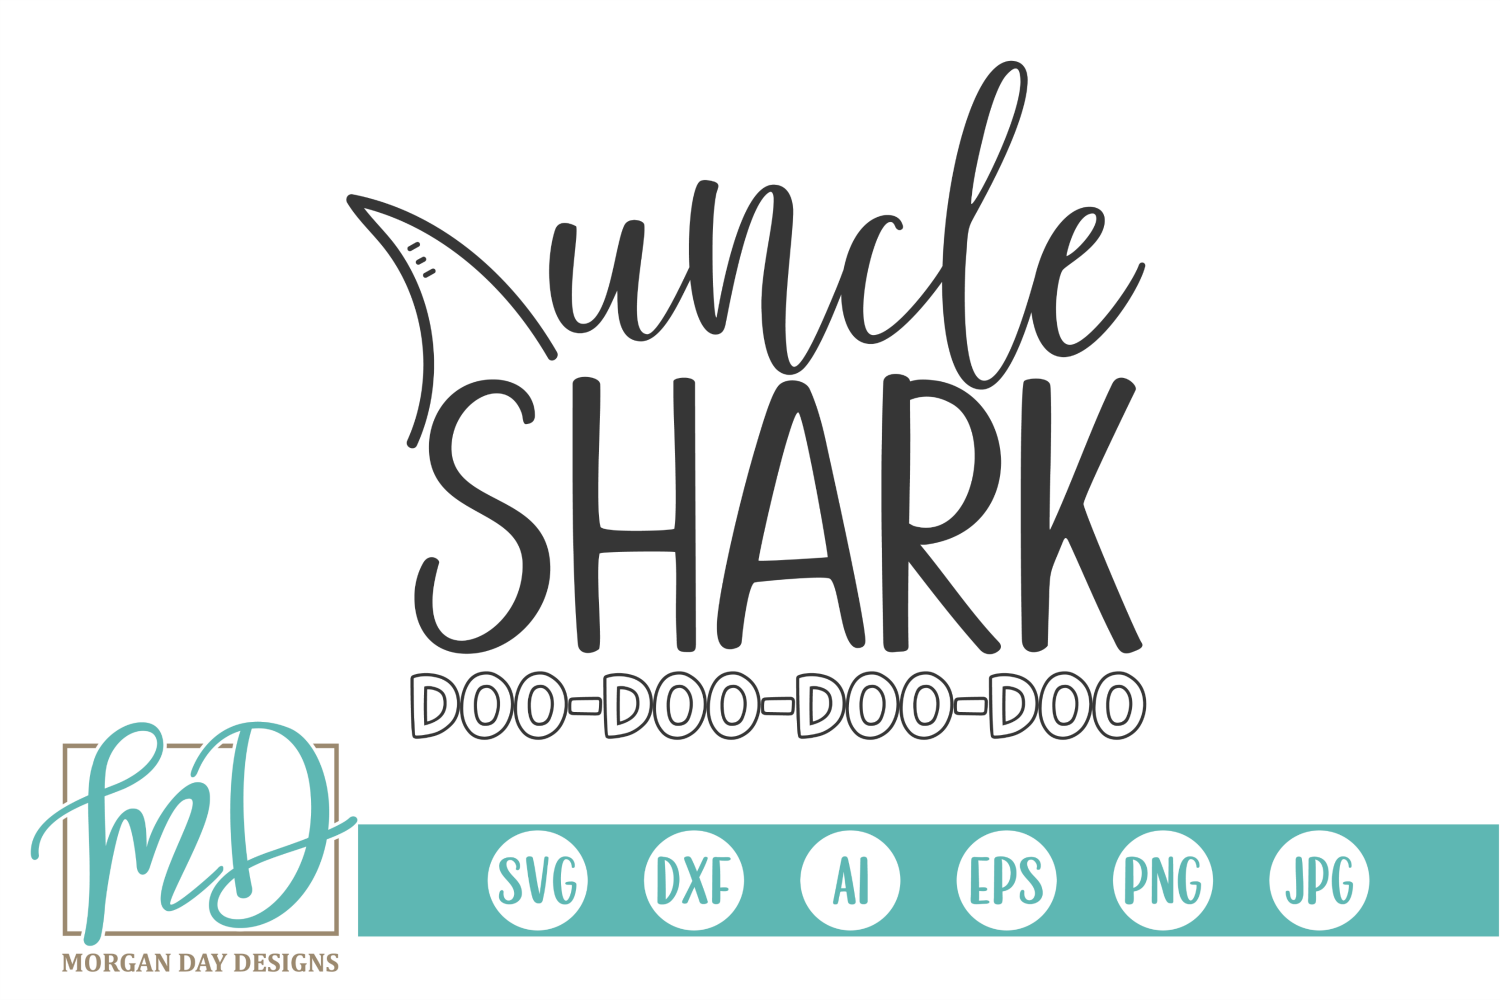 Uncle Shark Svg By Morgan Day Designs Thehungryjpeg Com